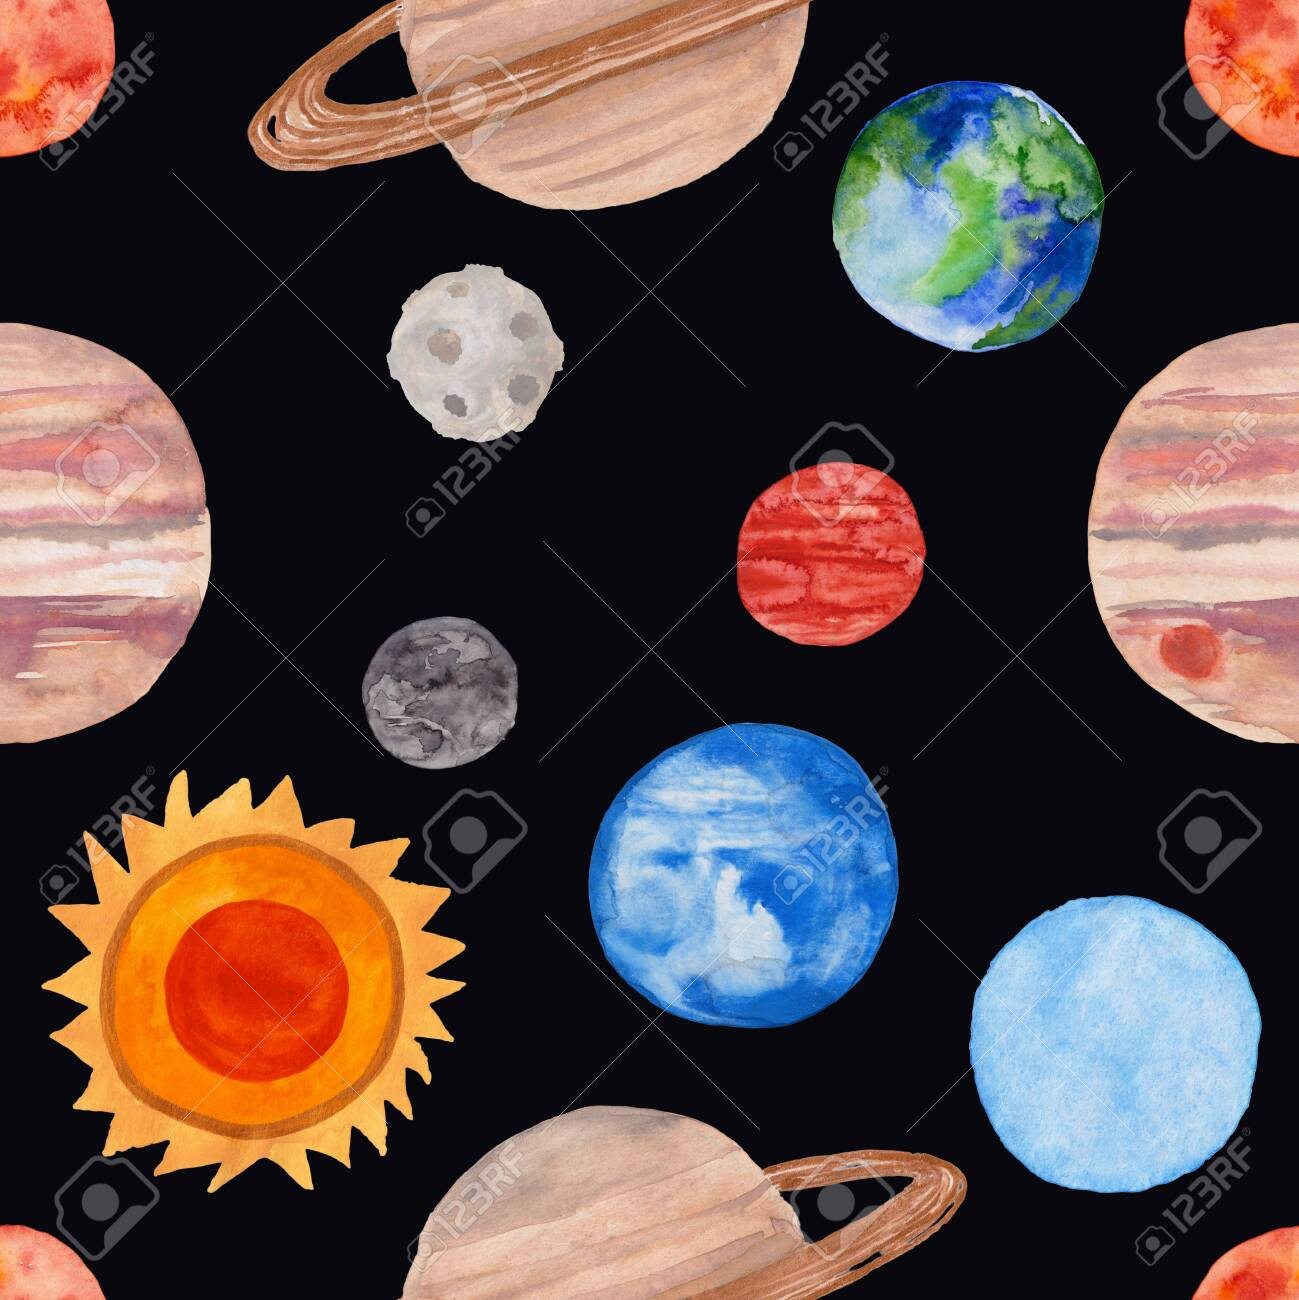 Space Seamless Pattern With Planets Of The Solar System On A Black Background Kids Gouache Painted Funny Wallpaper Stock Photo Picture And Royalty Free Image Image 147706747